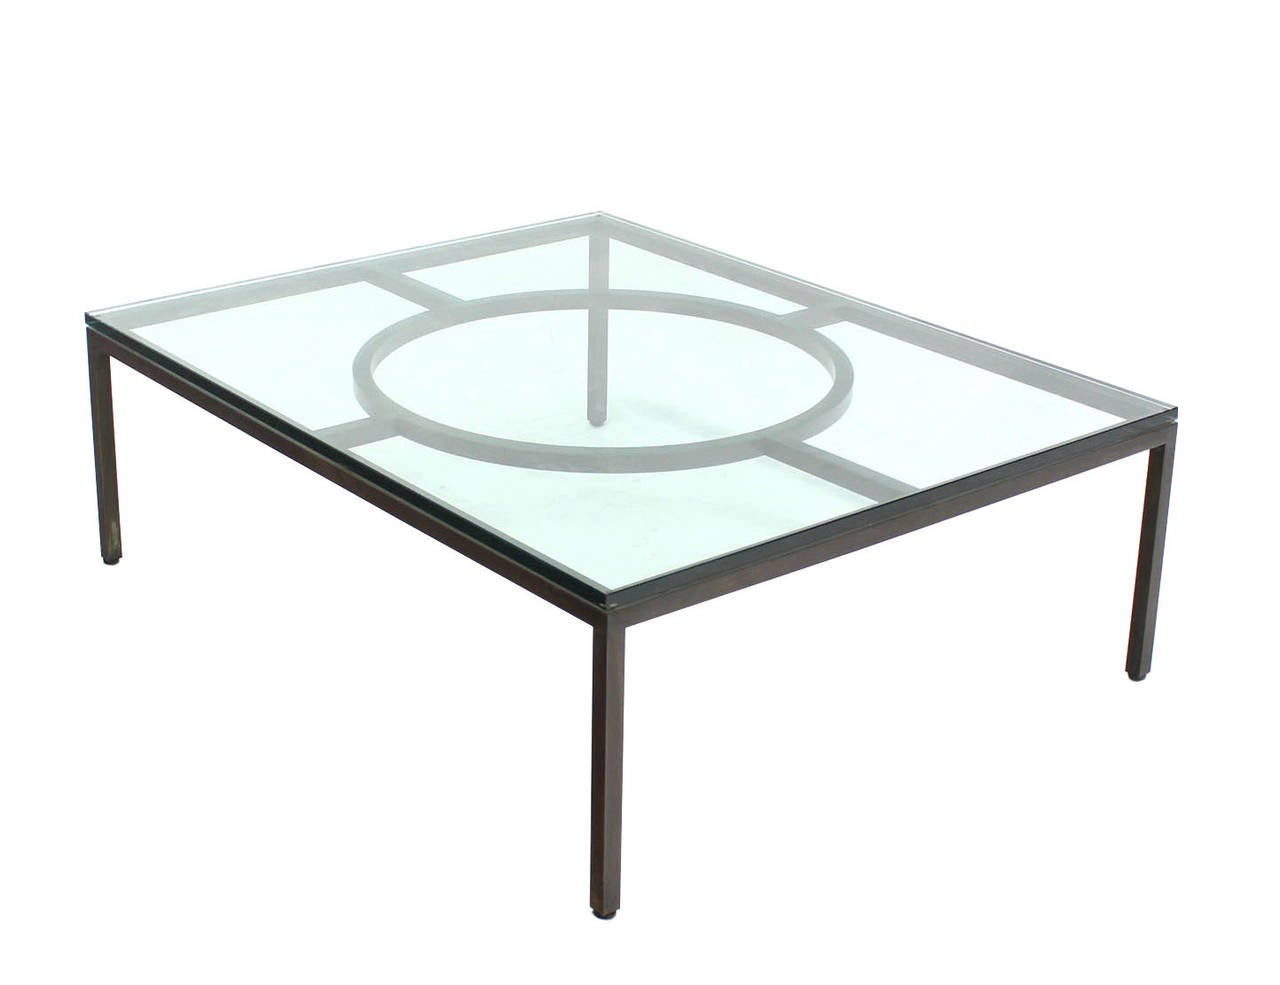 Extra large wide rectangle bronzed frame modern coffee table 3 4 thick glass for sale at 1stdibs Large glass coffee table